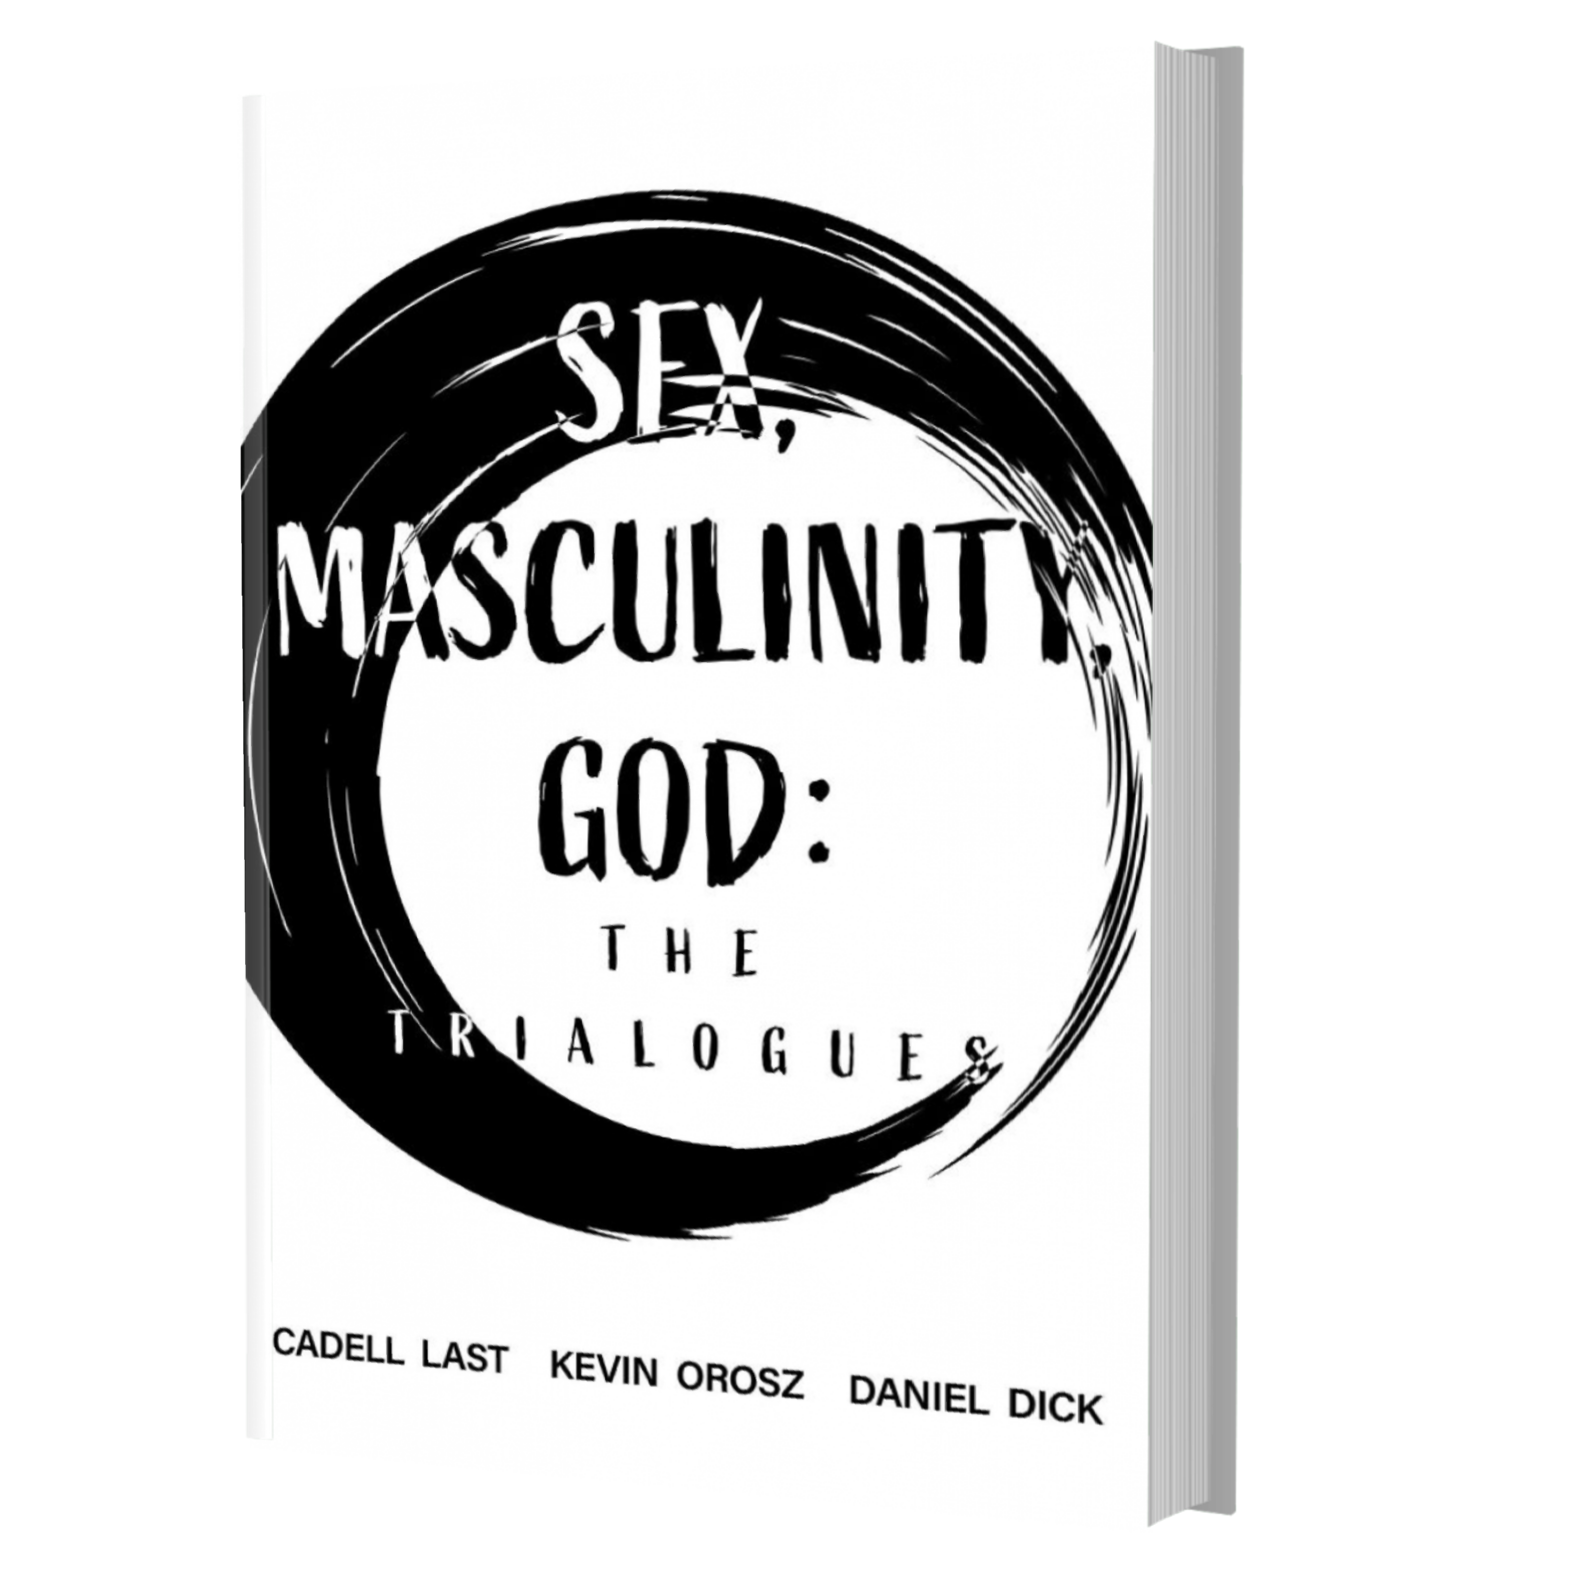 SEX, MASCULINITY, AND GOD